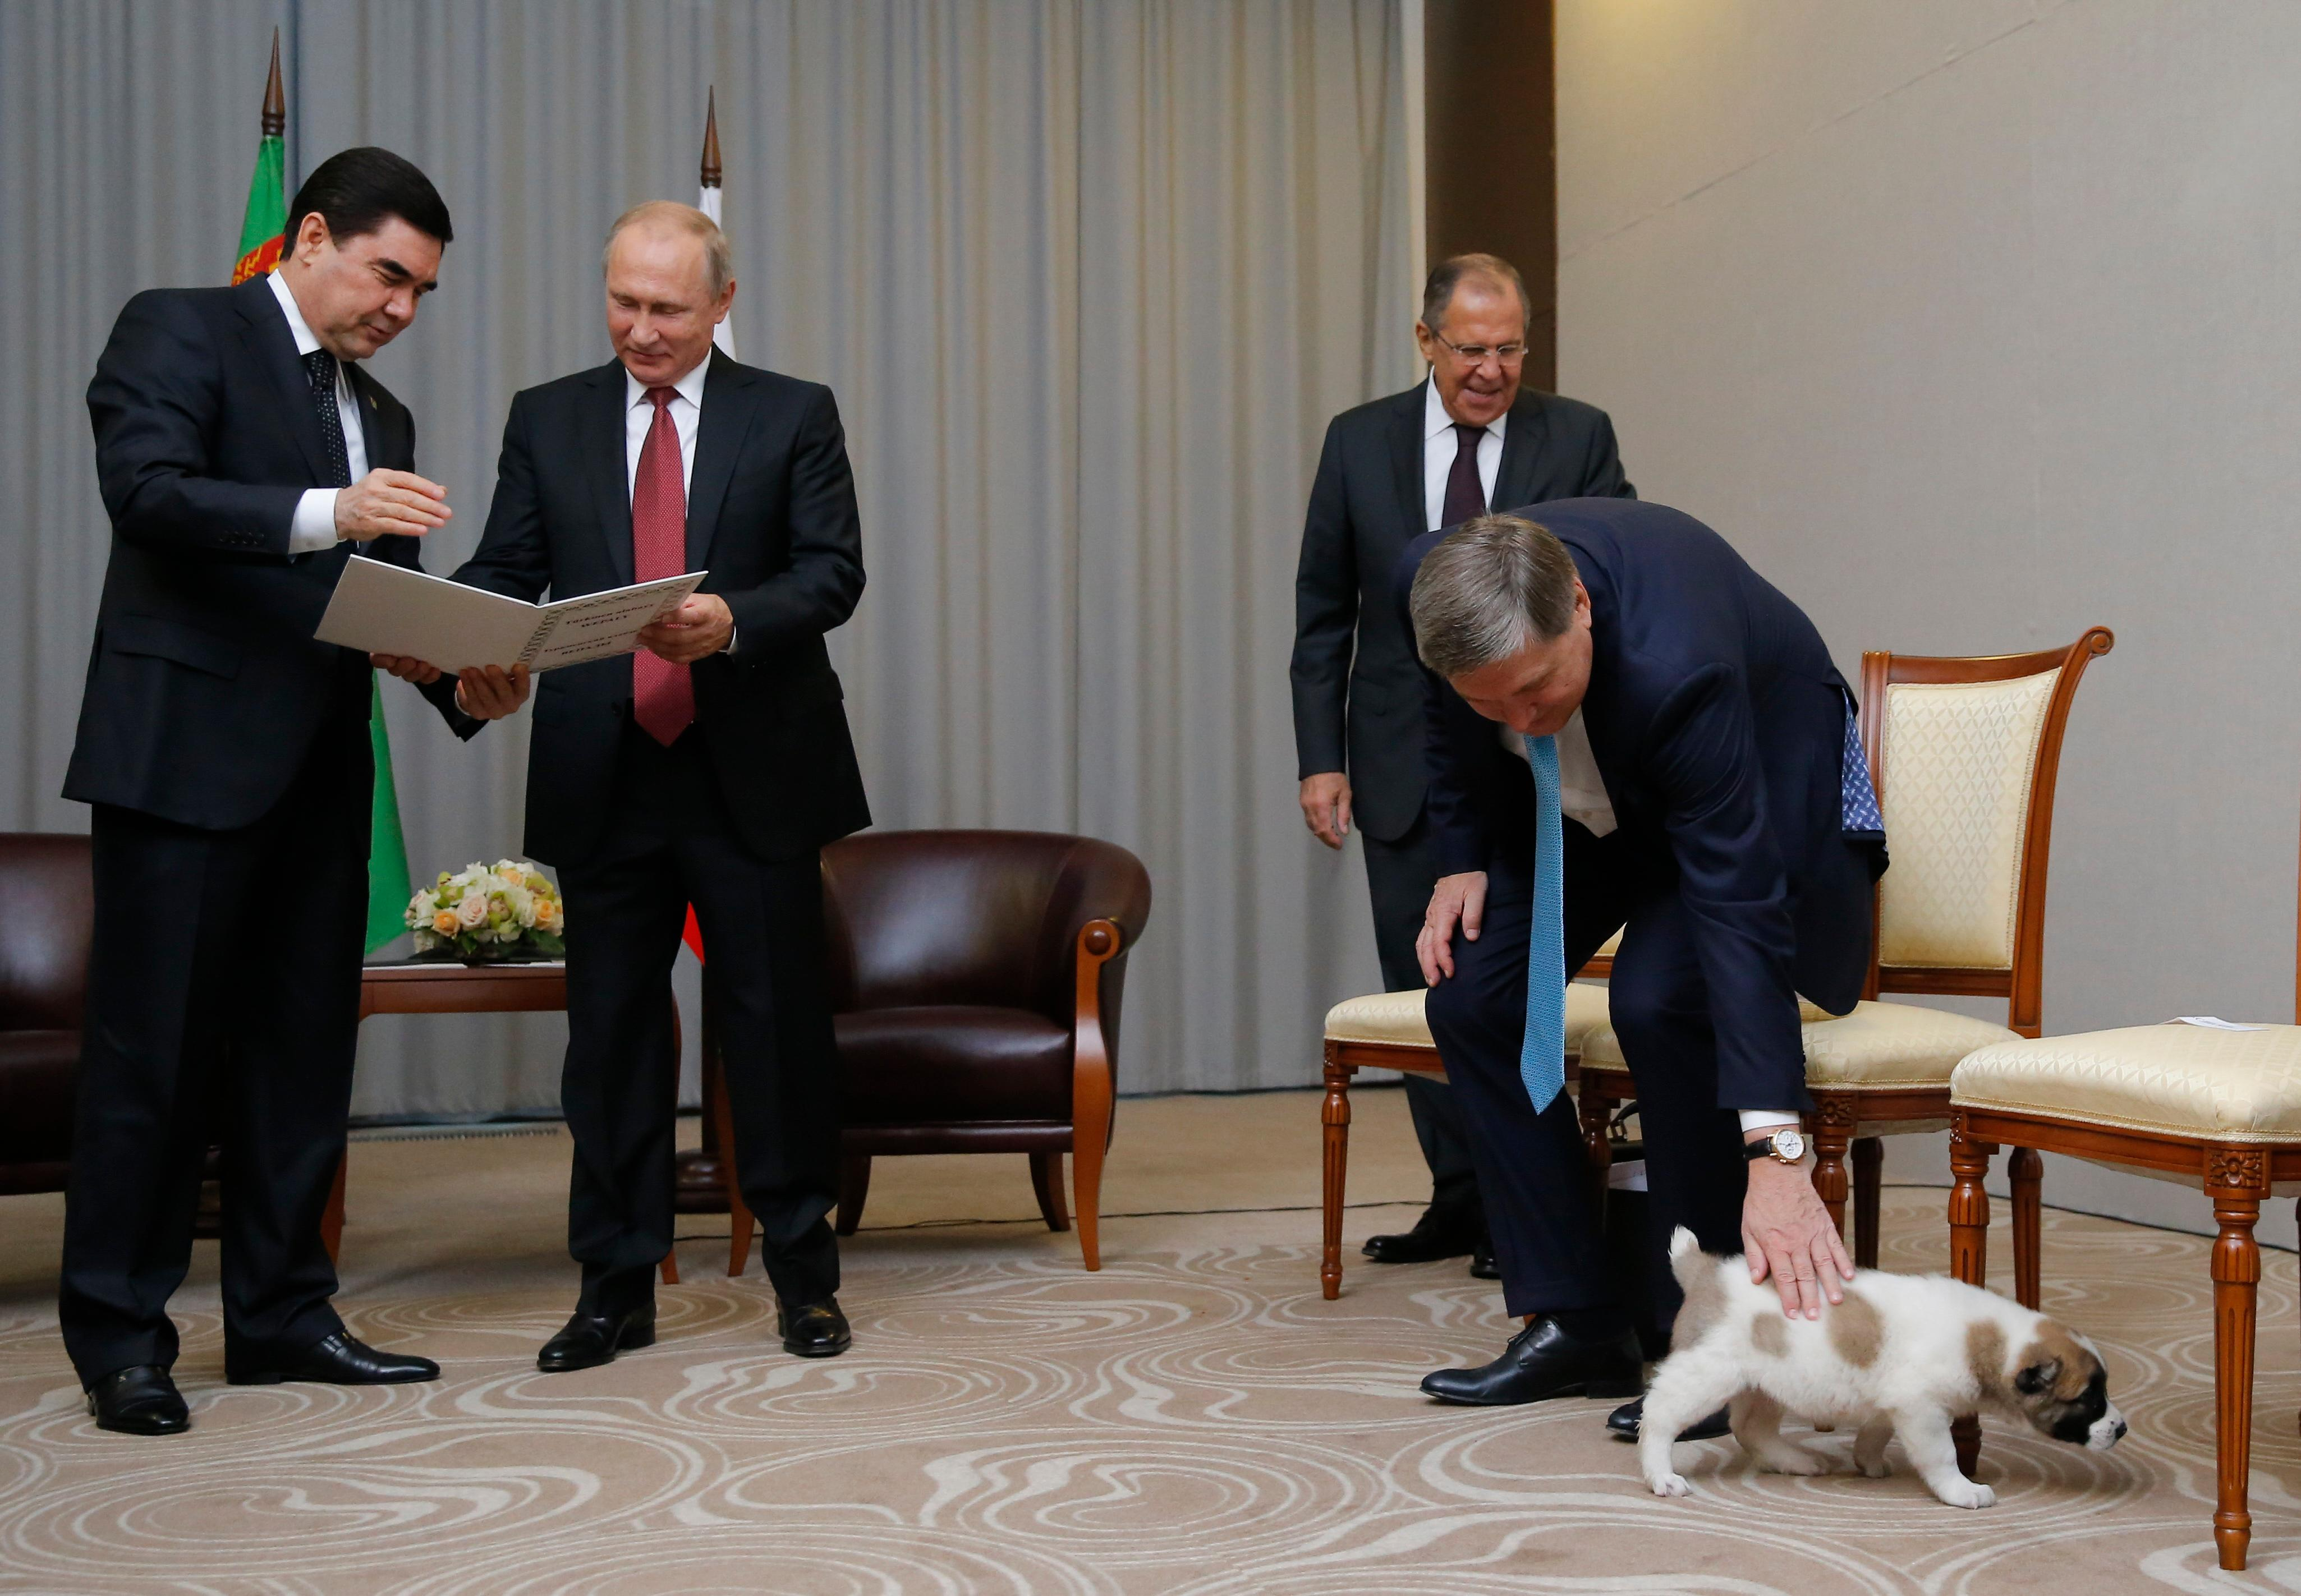 Turkmenistan's President Gurbanguly Berdymukhamedov, left, shows documents of presented by his puppy to Russian President Vladimir Putin, second right, as Foreign Minister Sergey Lavrov, second right, Presidential foreign affairs adviser Yuri Ushakov, right, play with the puppy during their meeting in the Bocharov Ruchei residence in the Black Sea resort of Sochi, Russia, Wednesday, Oct. 11, 2017. The presidents met at the sidelines of a summit of leaders of ex-Soviet nations in Sochi. (Maxim Shemetov, Pool Photo via AP)